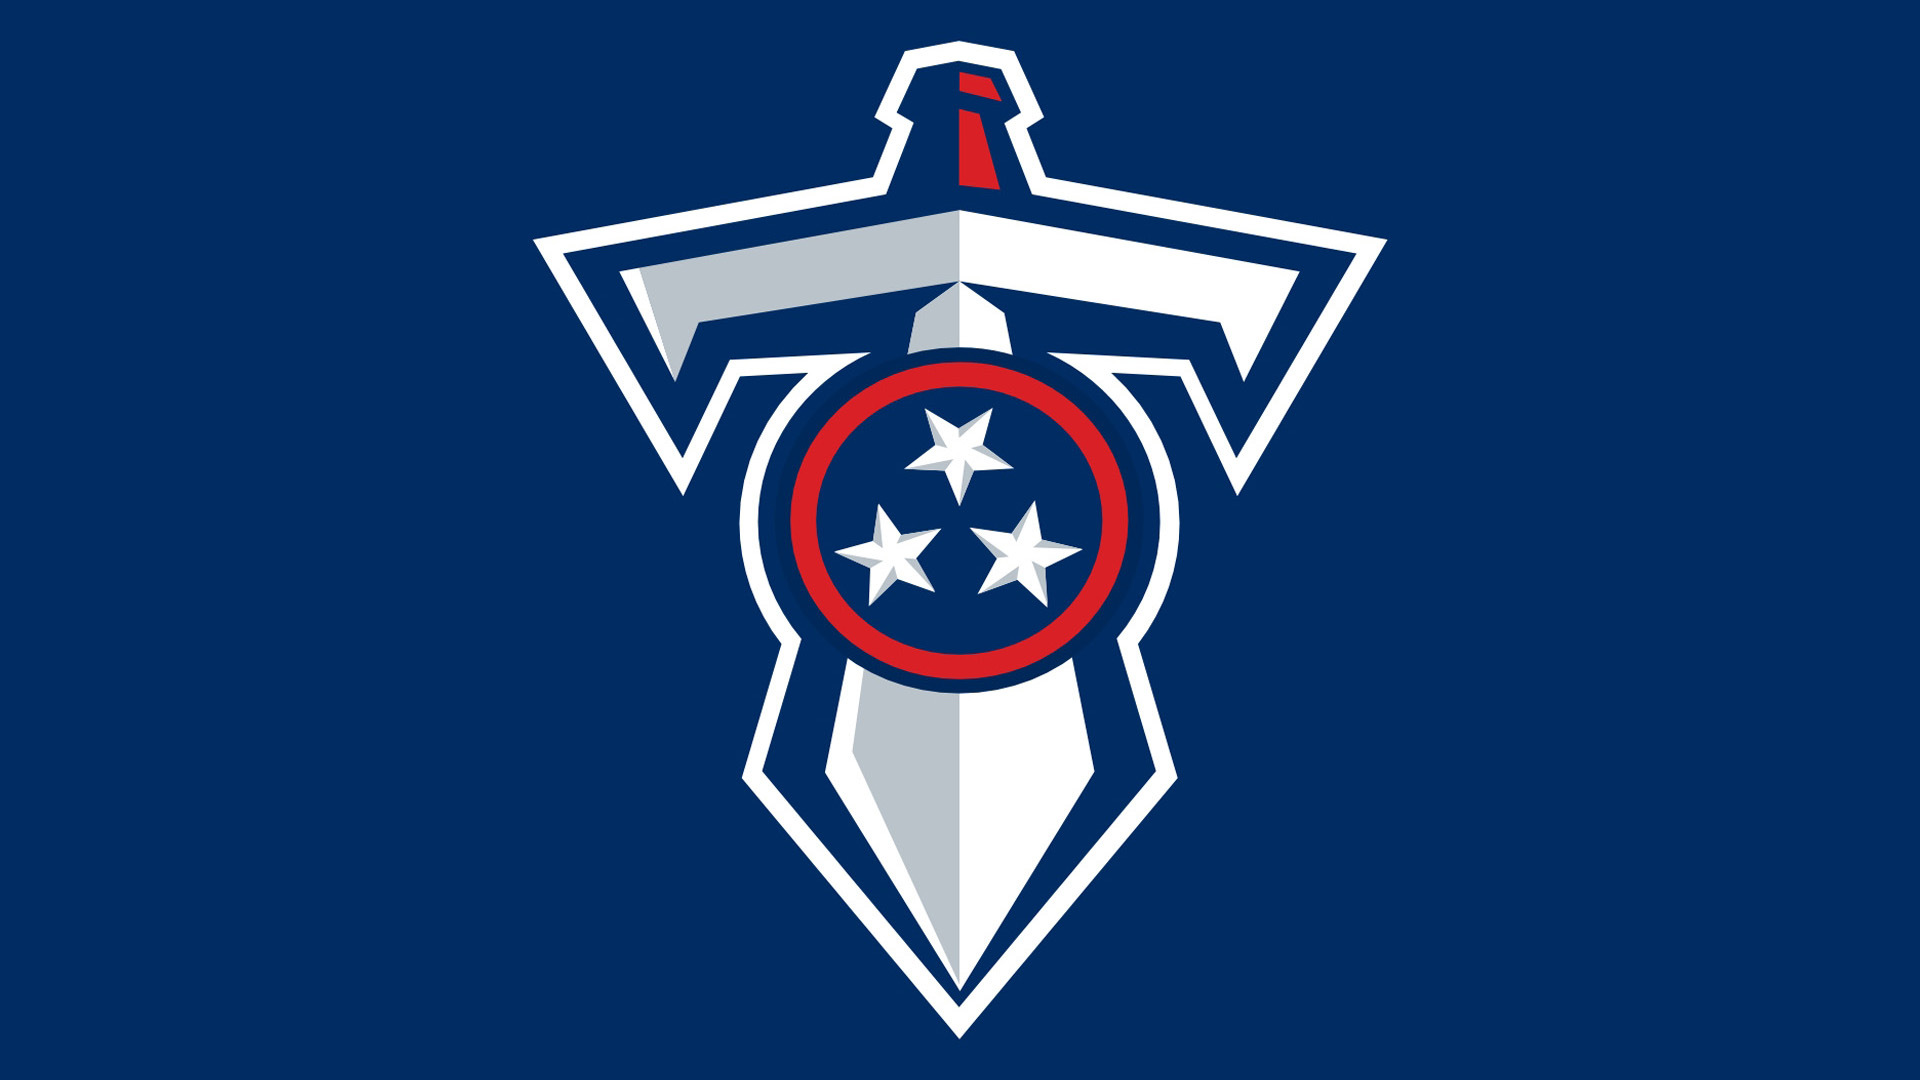 Tennessee Titans Wallpaper 1920x1080 80126